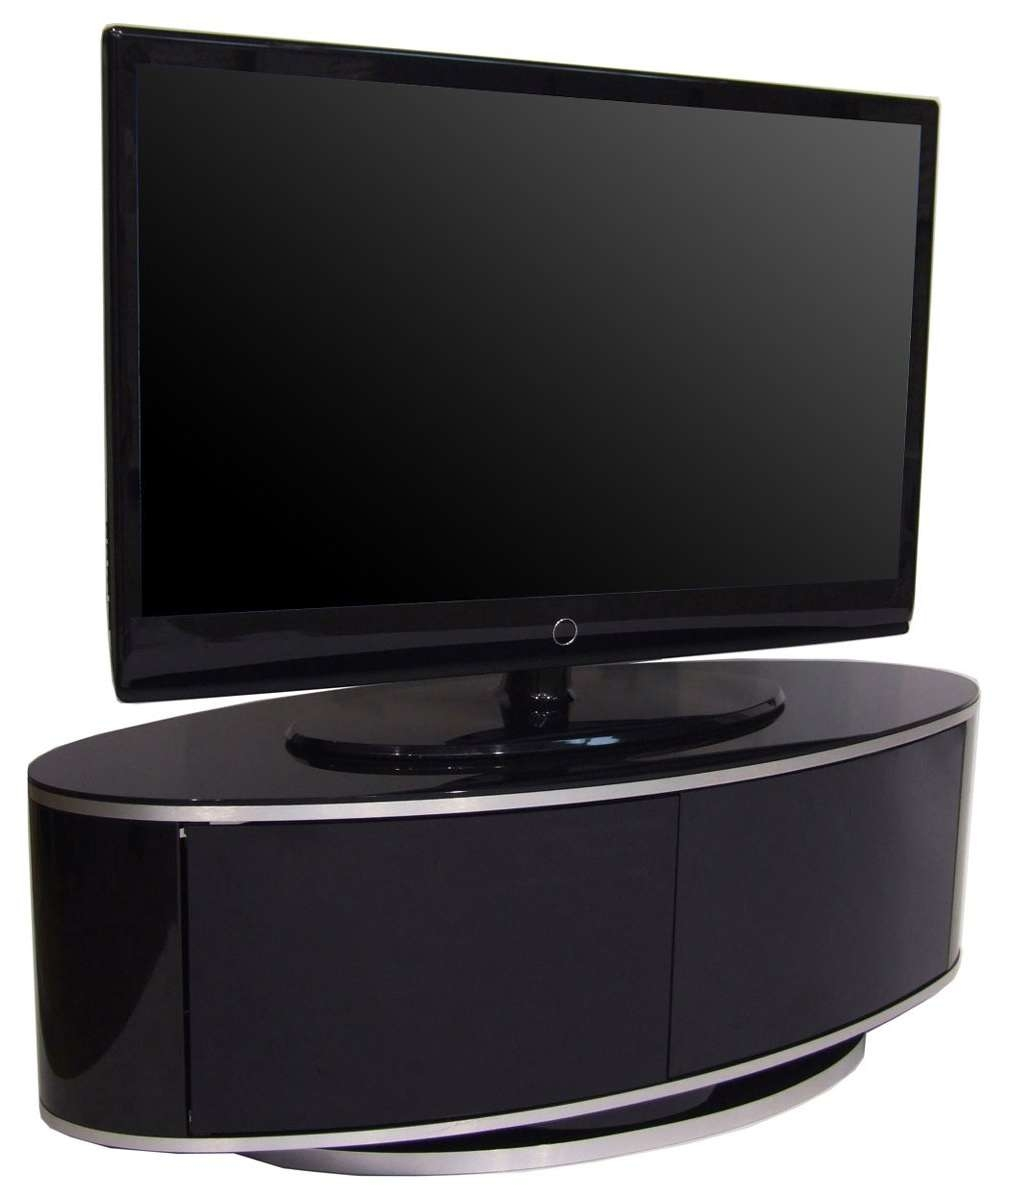 Luna High Gloss Black Oval Tv Cabinet Intended For Tv Stands Black Gloss (View 13 of 15)